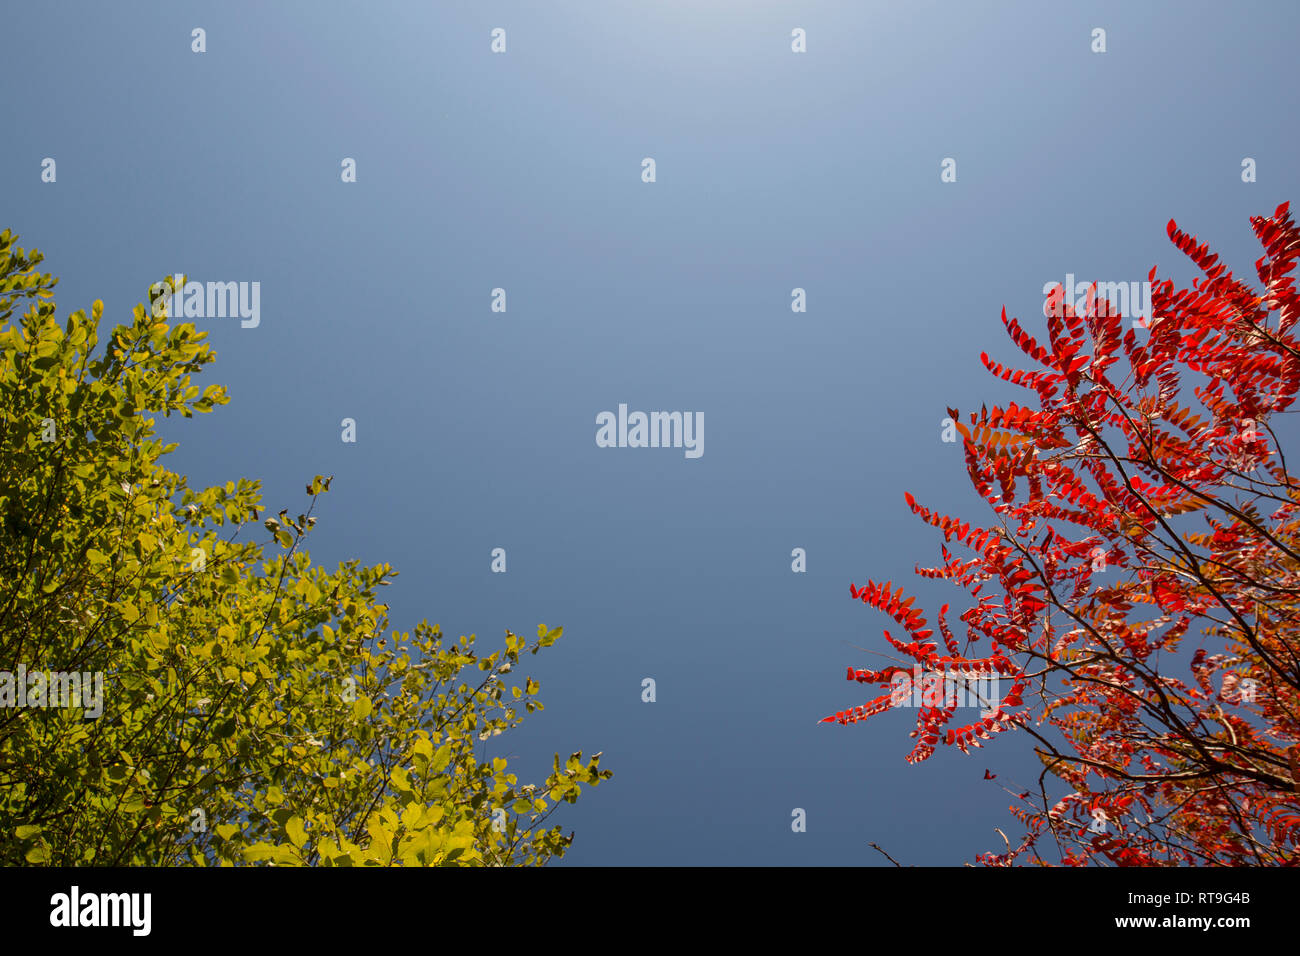 Tree with green summer foliage and tree with red autumn foliage against blue sky - Stock Image